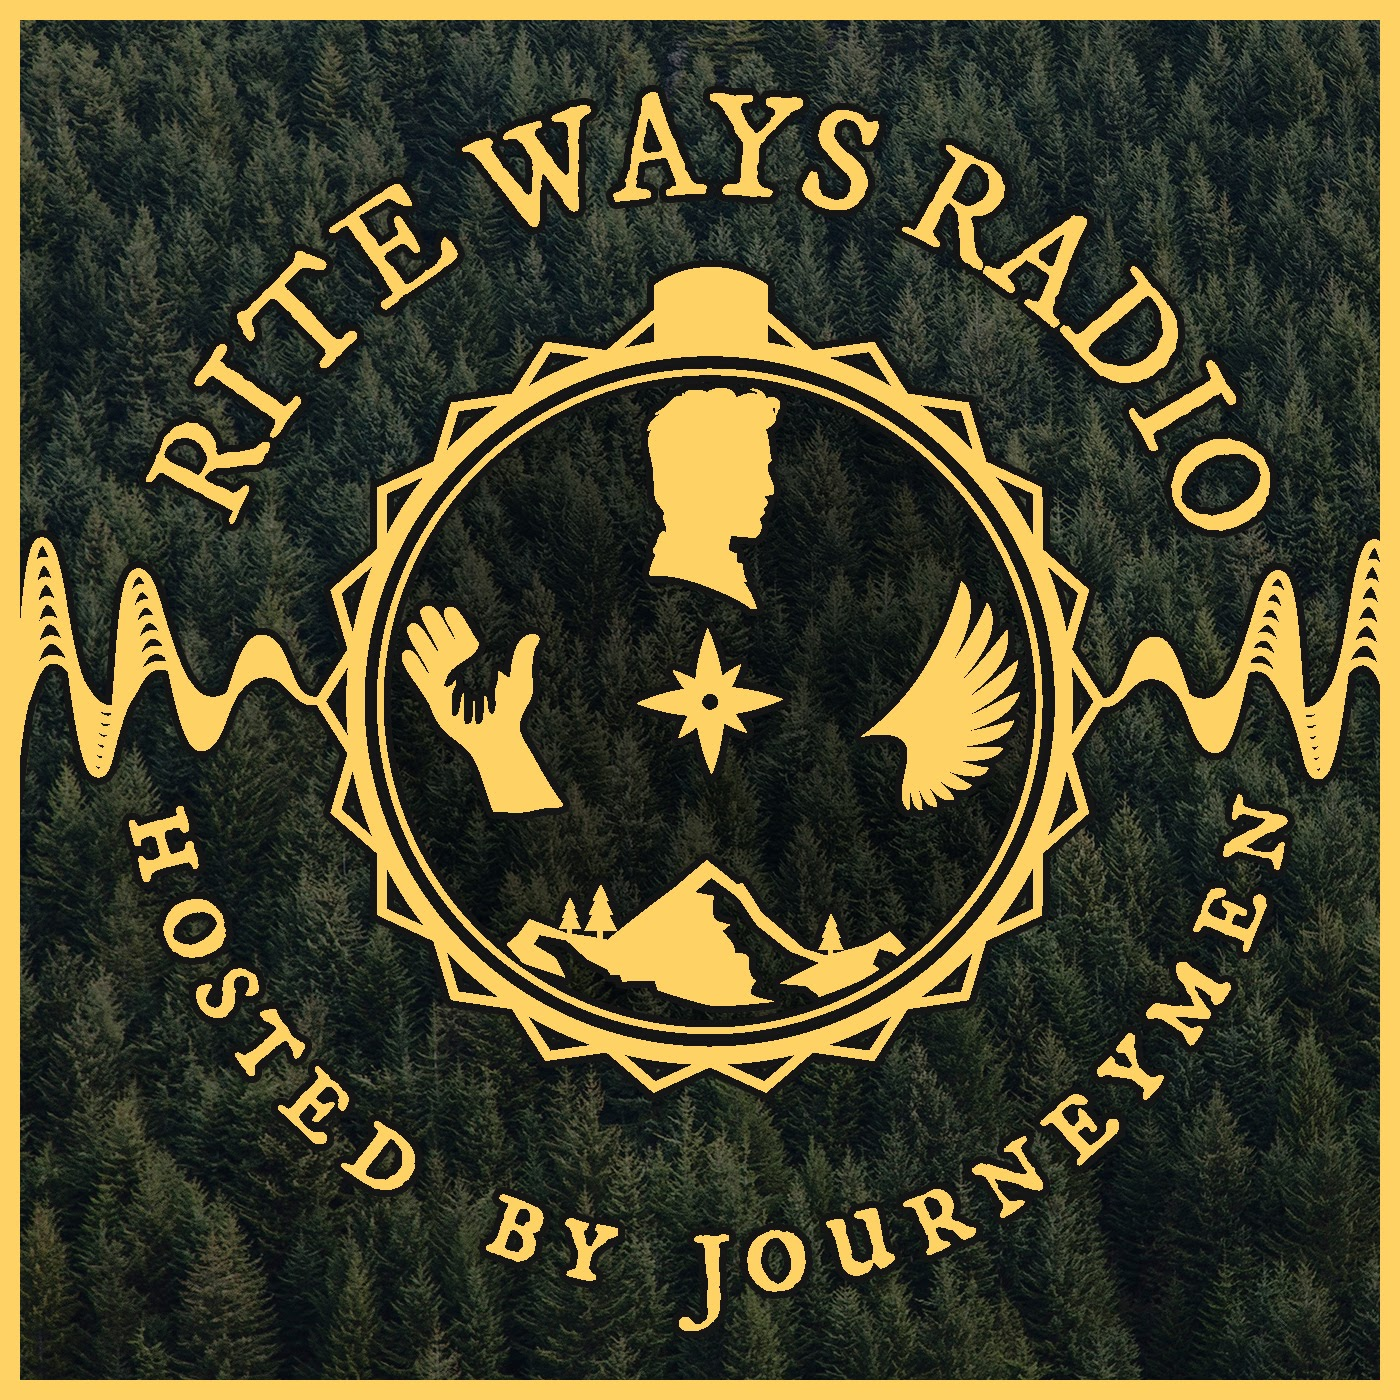 Journeymen - Rites Ways Radio Logo